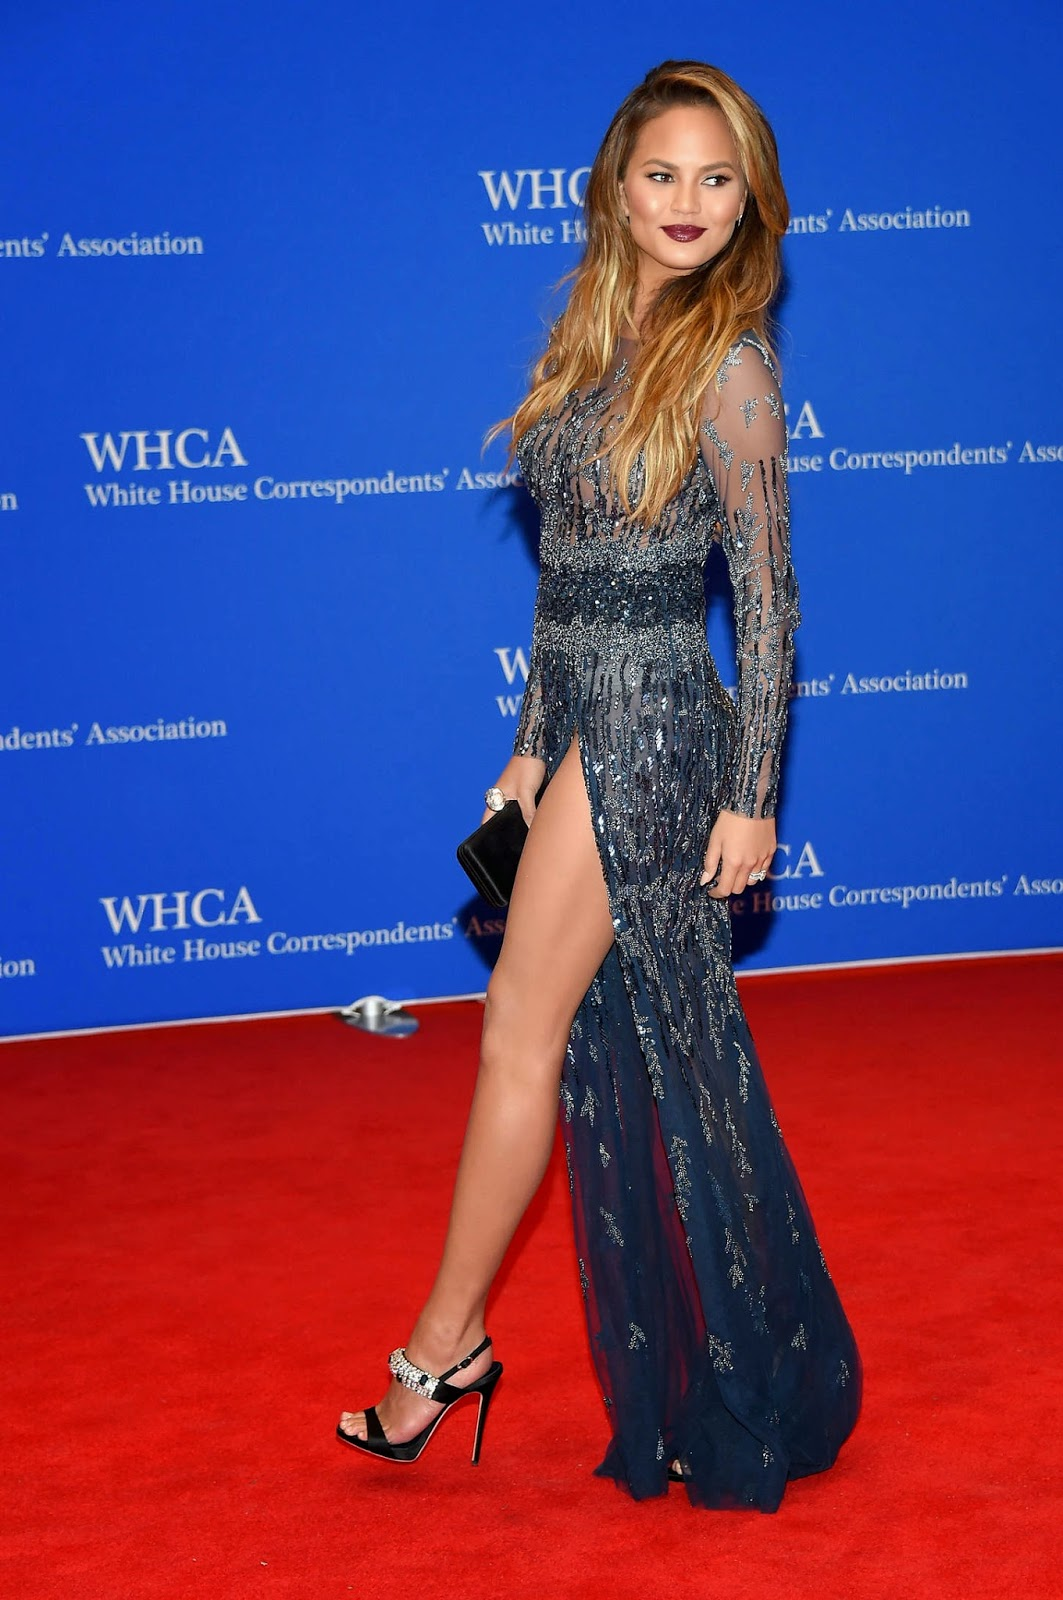 Chrissy Teigen shows off legs for the 2015 White House Correspondents' Association Dinner